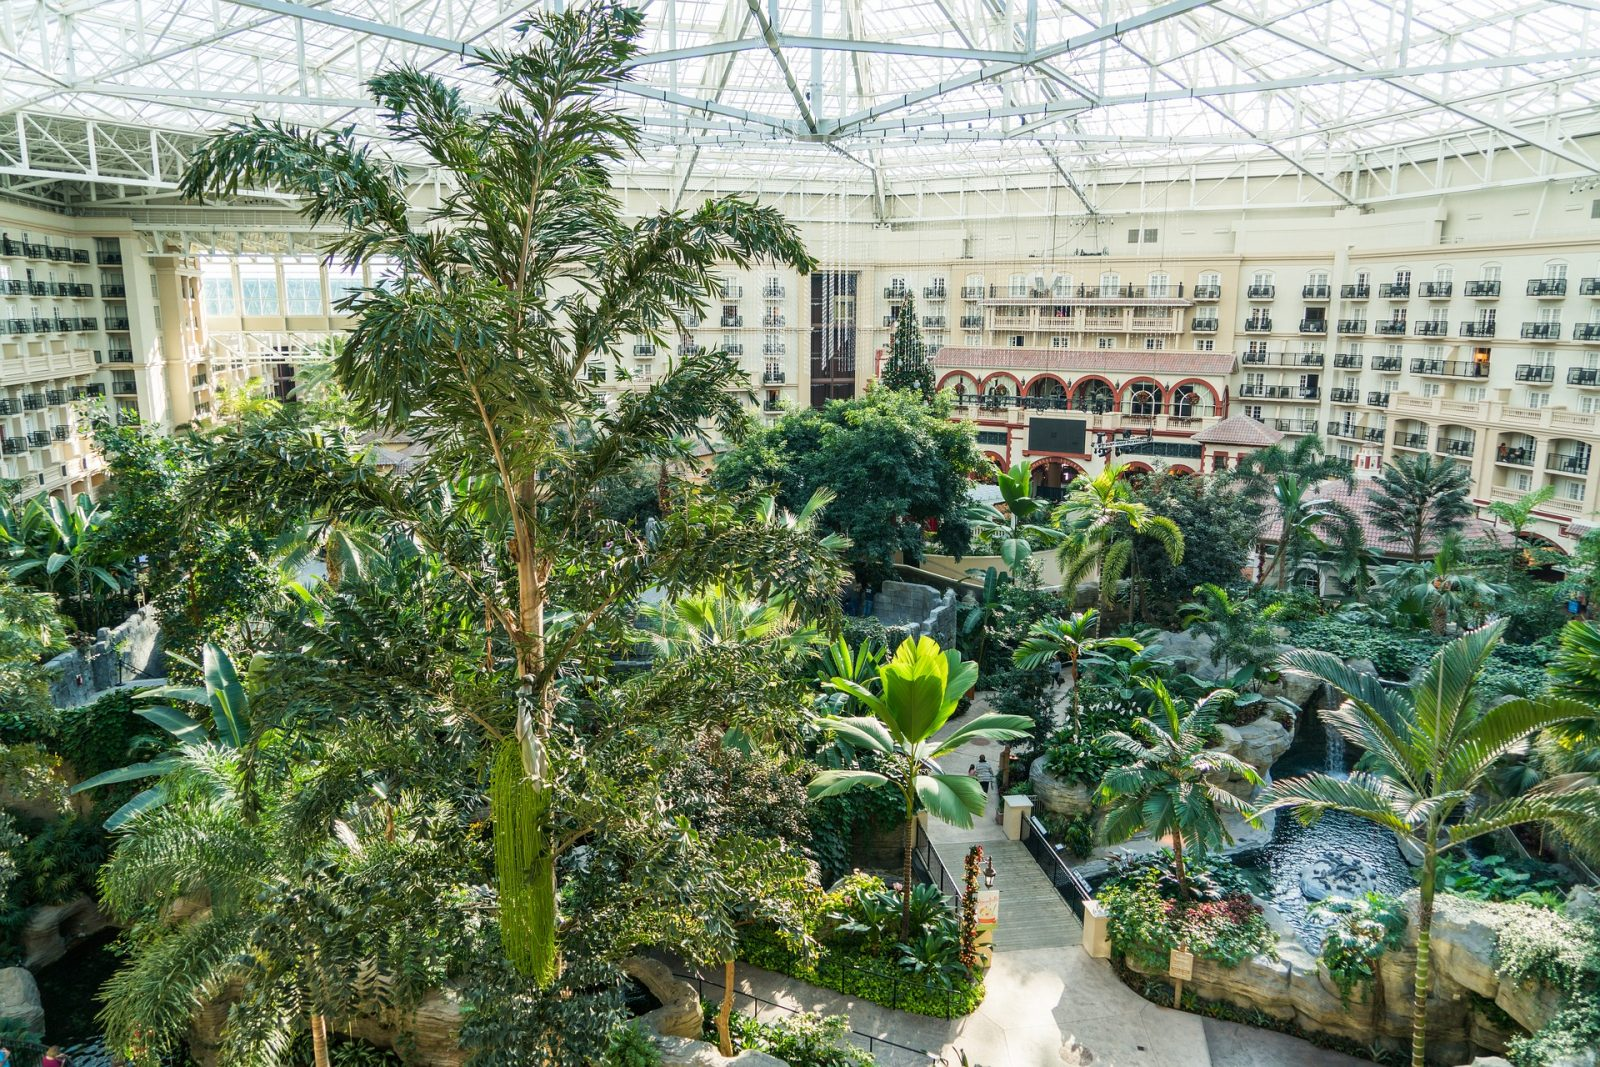 What to do in Orlando: Restaurant and hotel on the Disney property